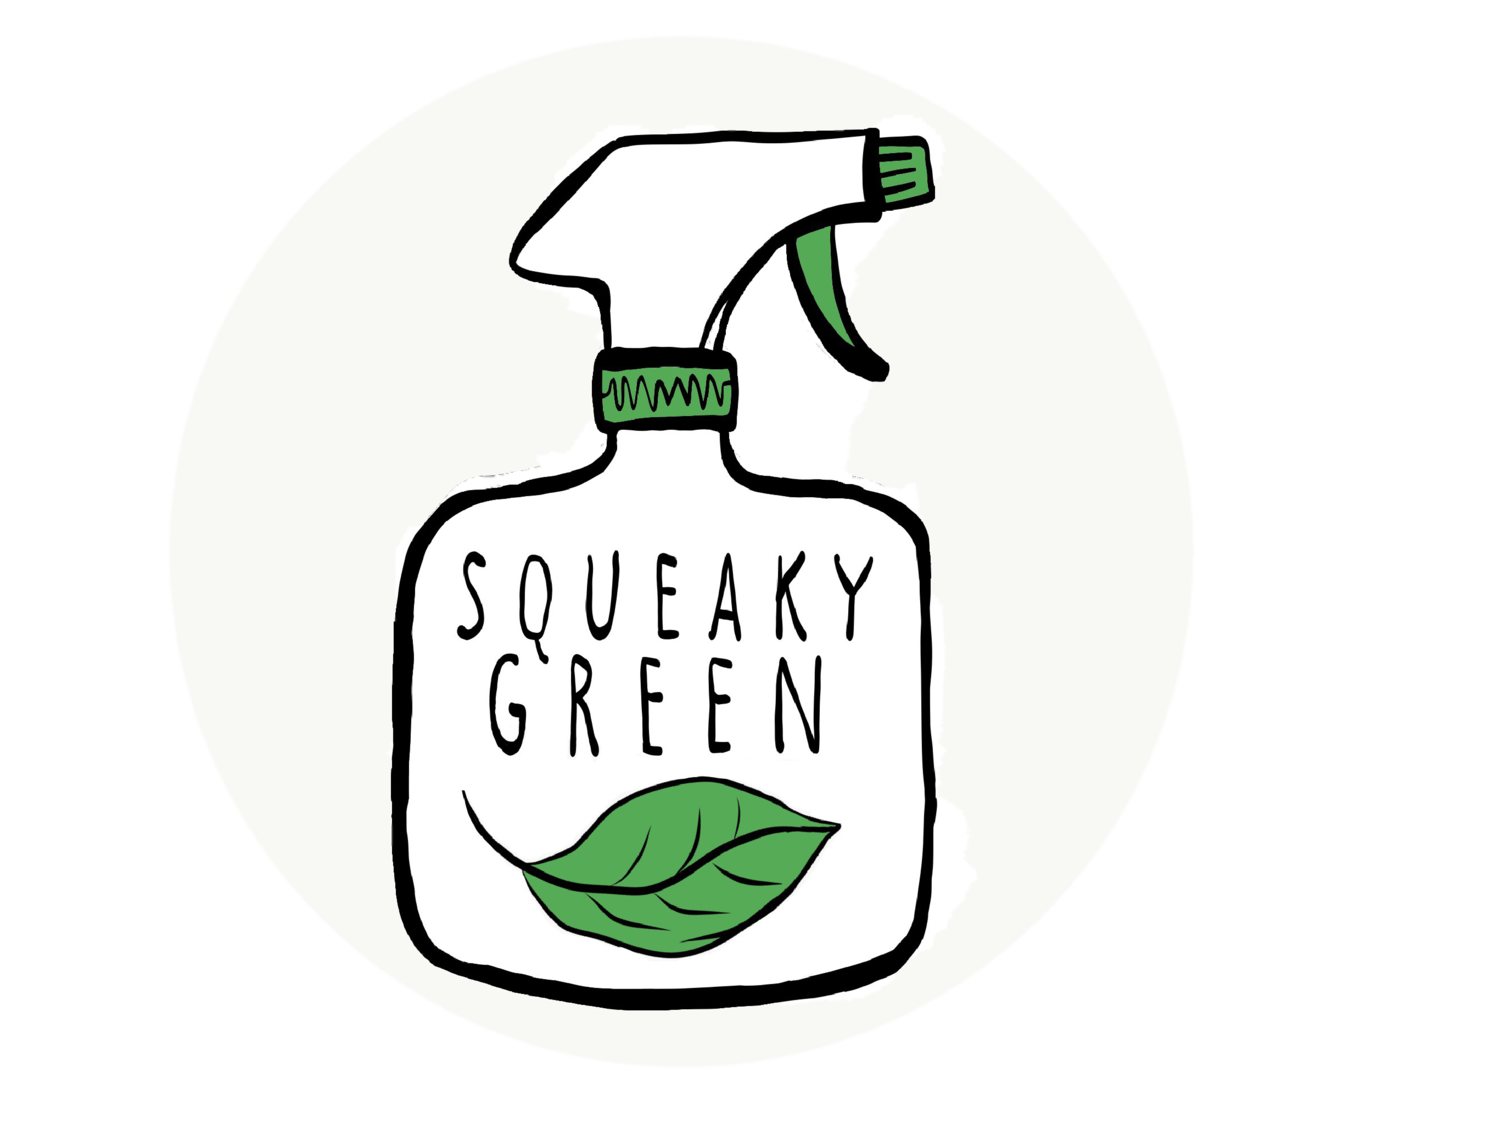 Squeaky Green Cleaning Co.